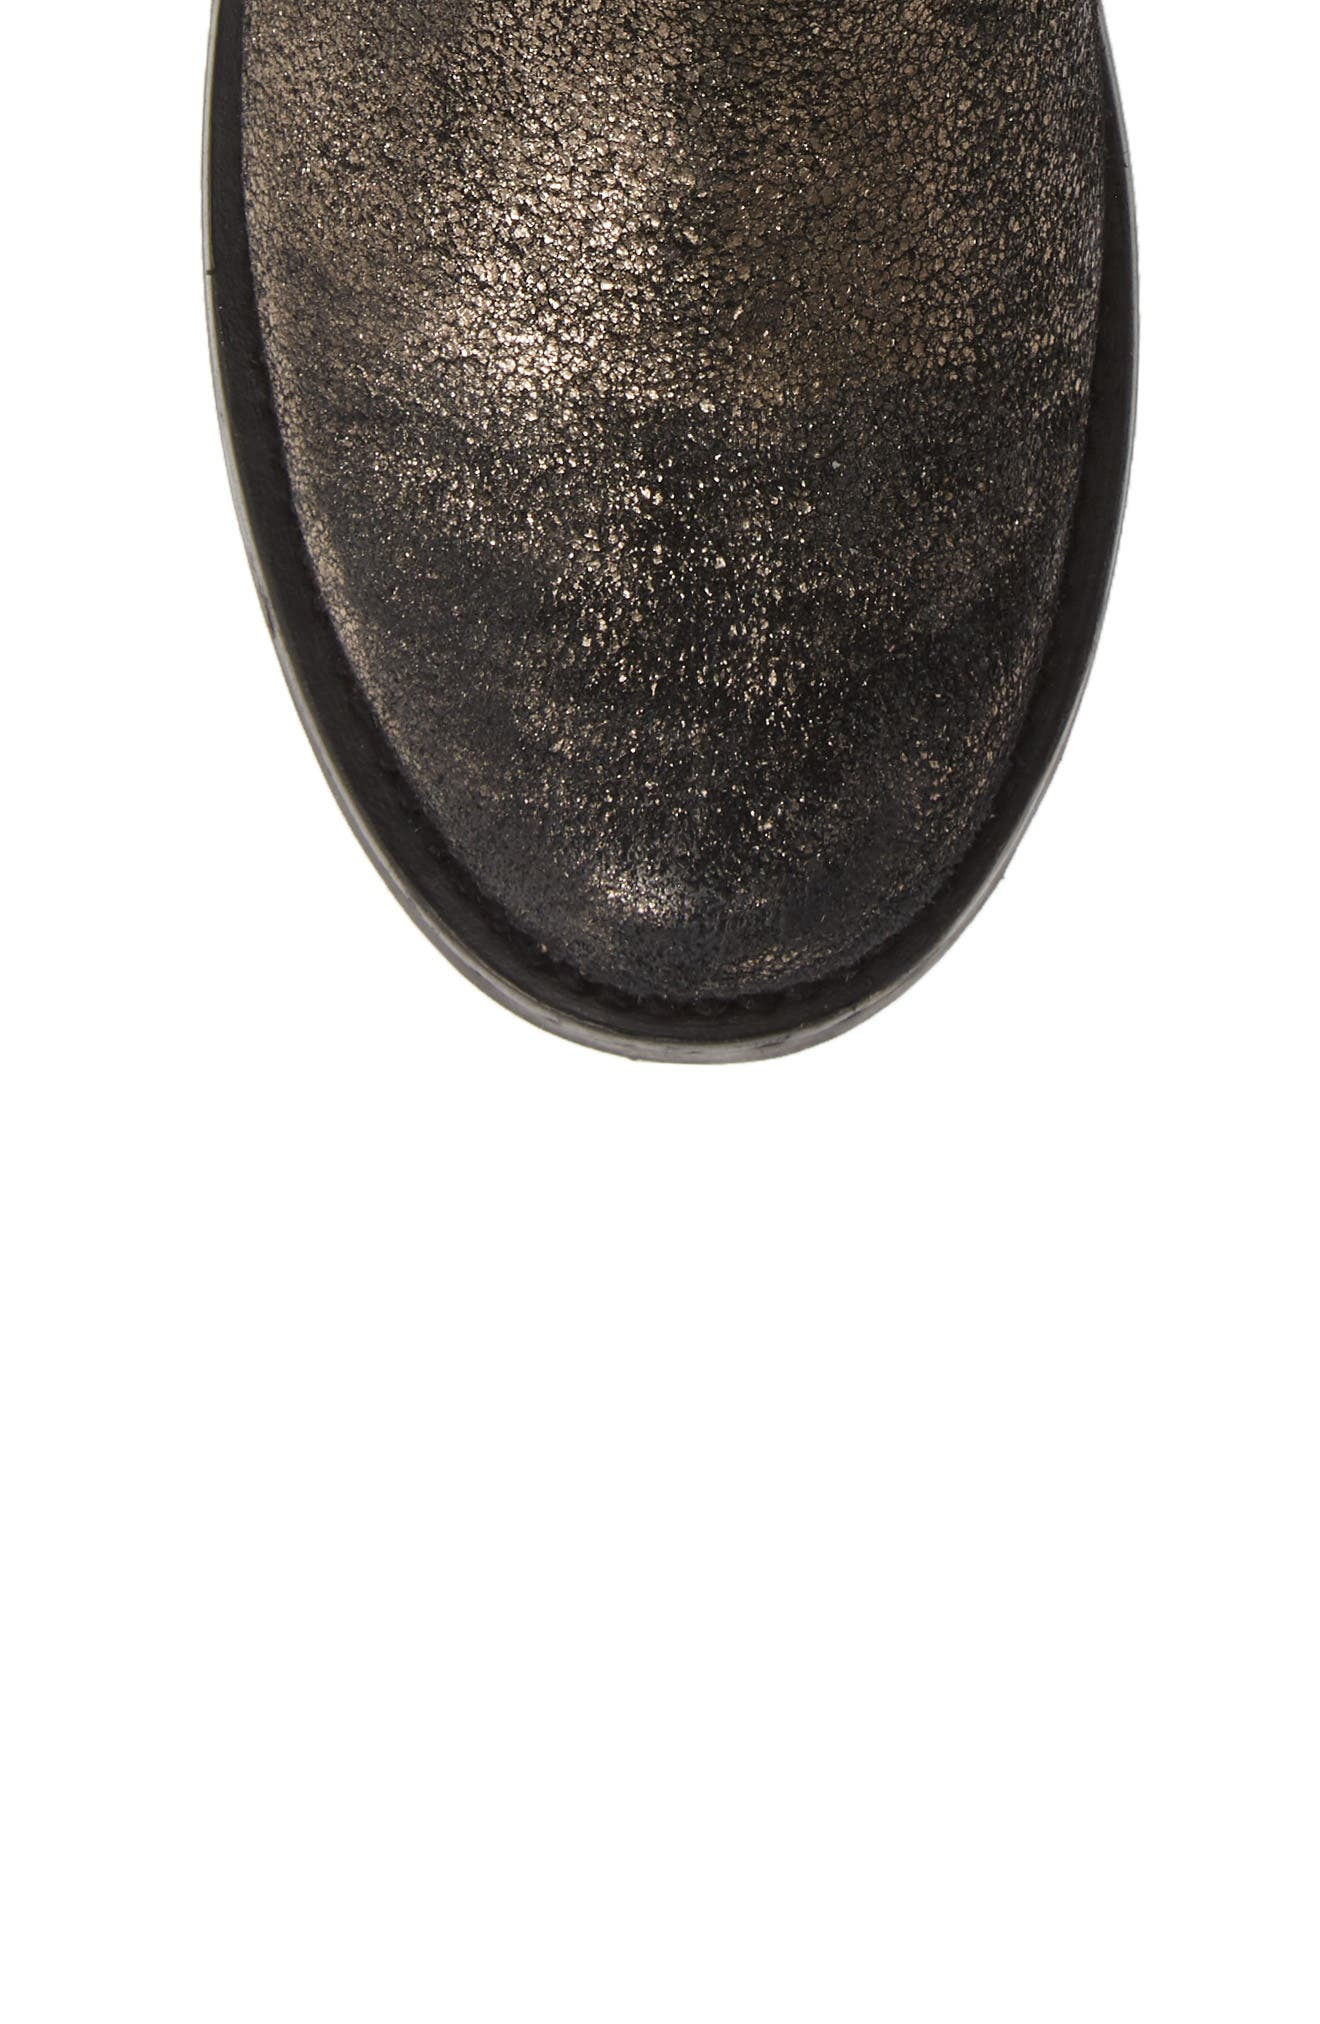 Veronica Bootie,                             Alternate thumbnail 5, color,                             GOLD LEATHER